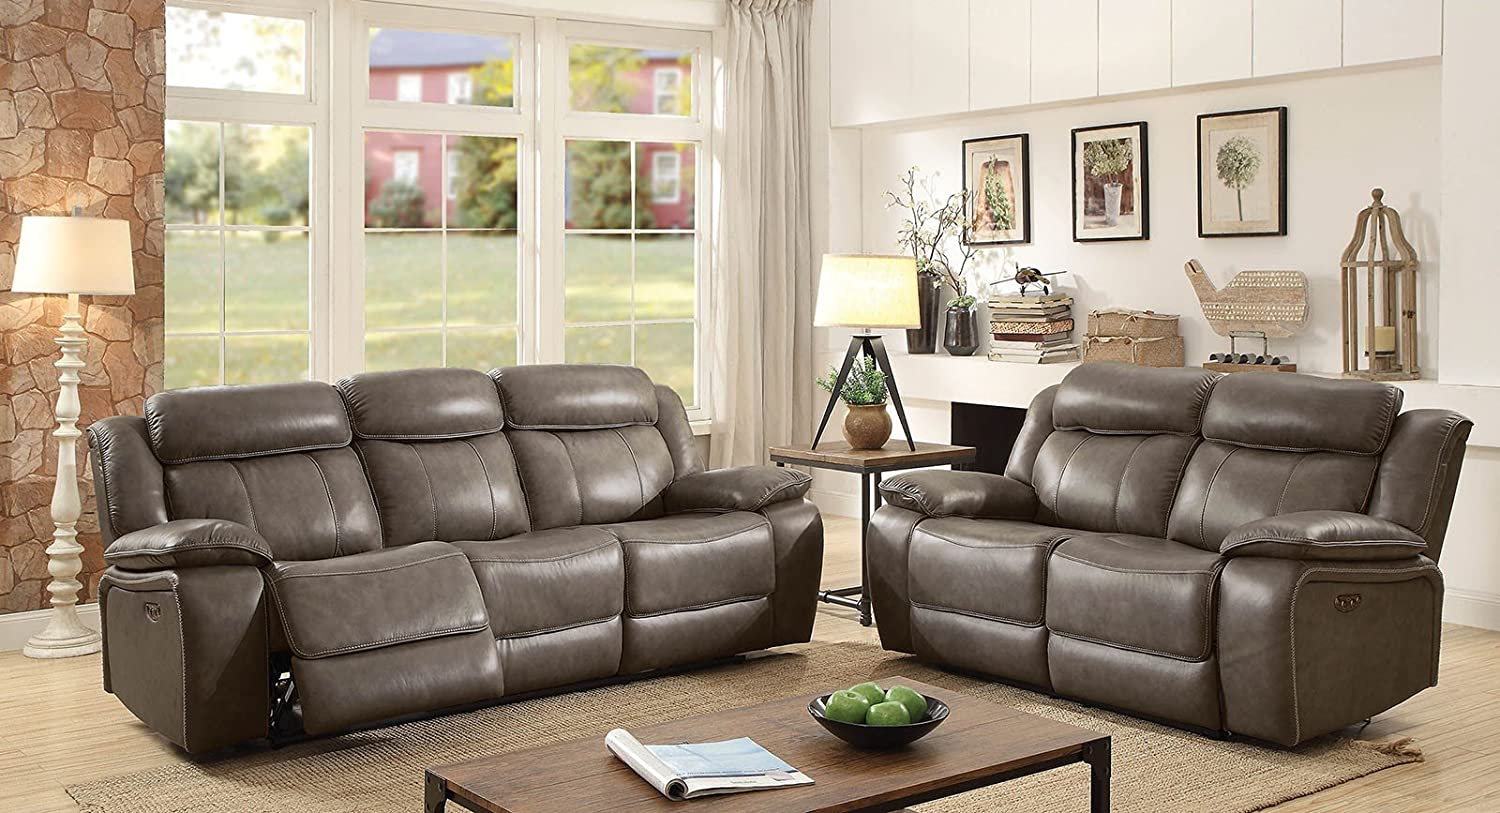 Amazon com page contemporary top grain leather gray sofa 3pc set reclining cushion couch living room furniture kitchen dining